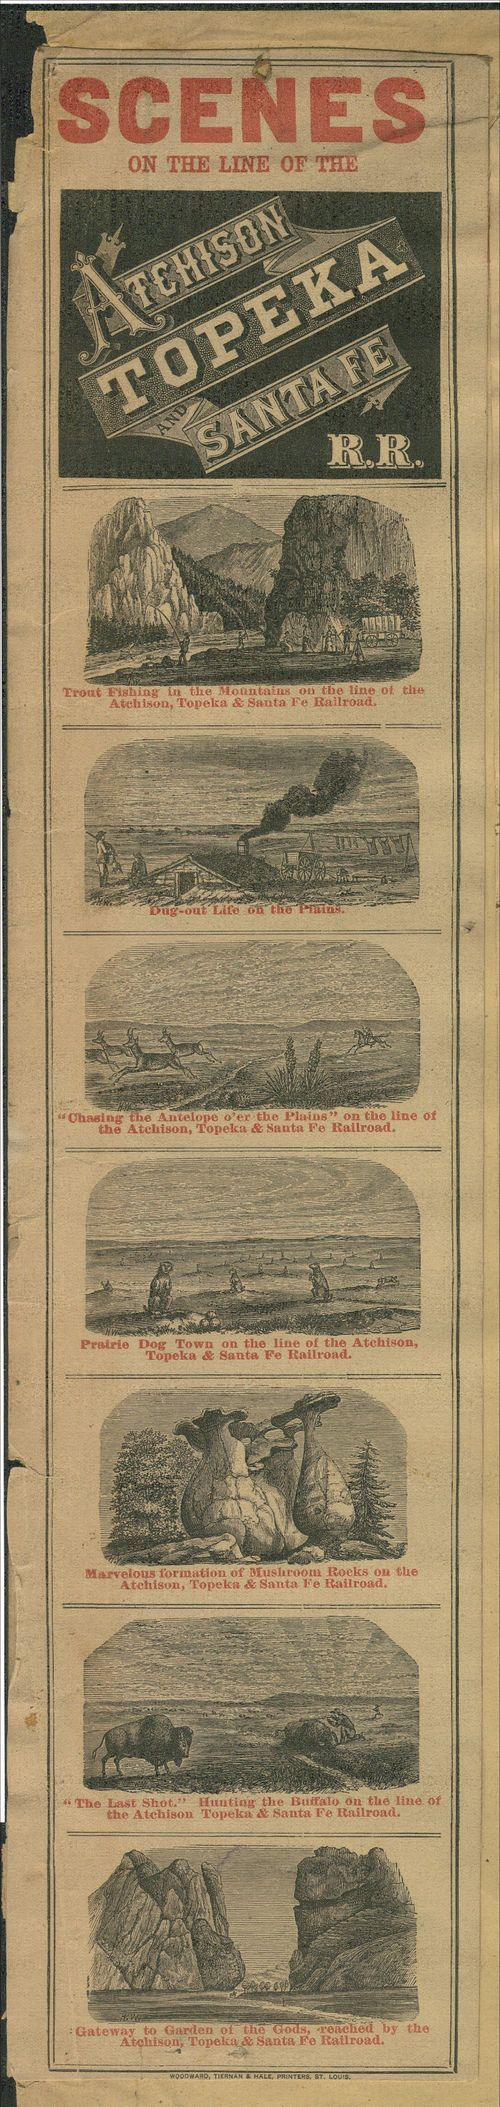 Scenes on the Line of the Atchison, Topeka and Santa Fe Railroad. - Page